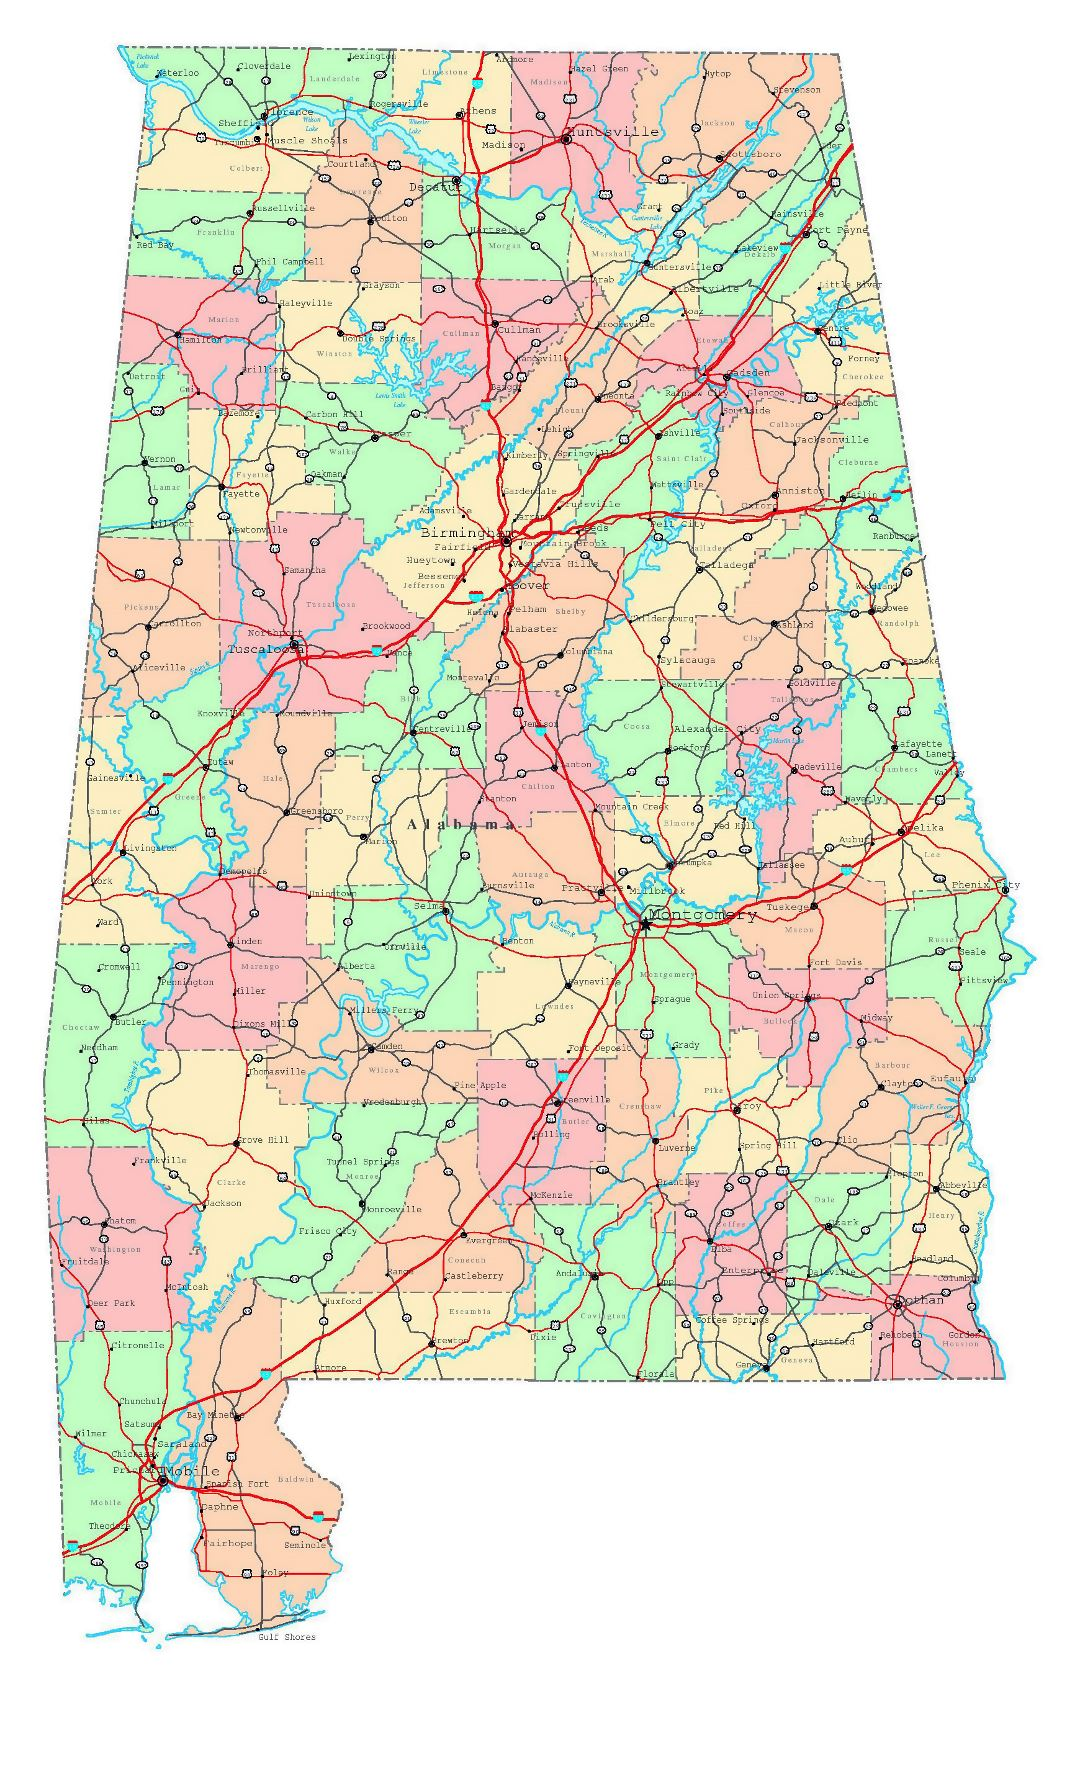 Large detailed administrative map of Alabama state with roads, highways and cities